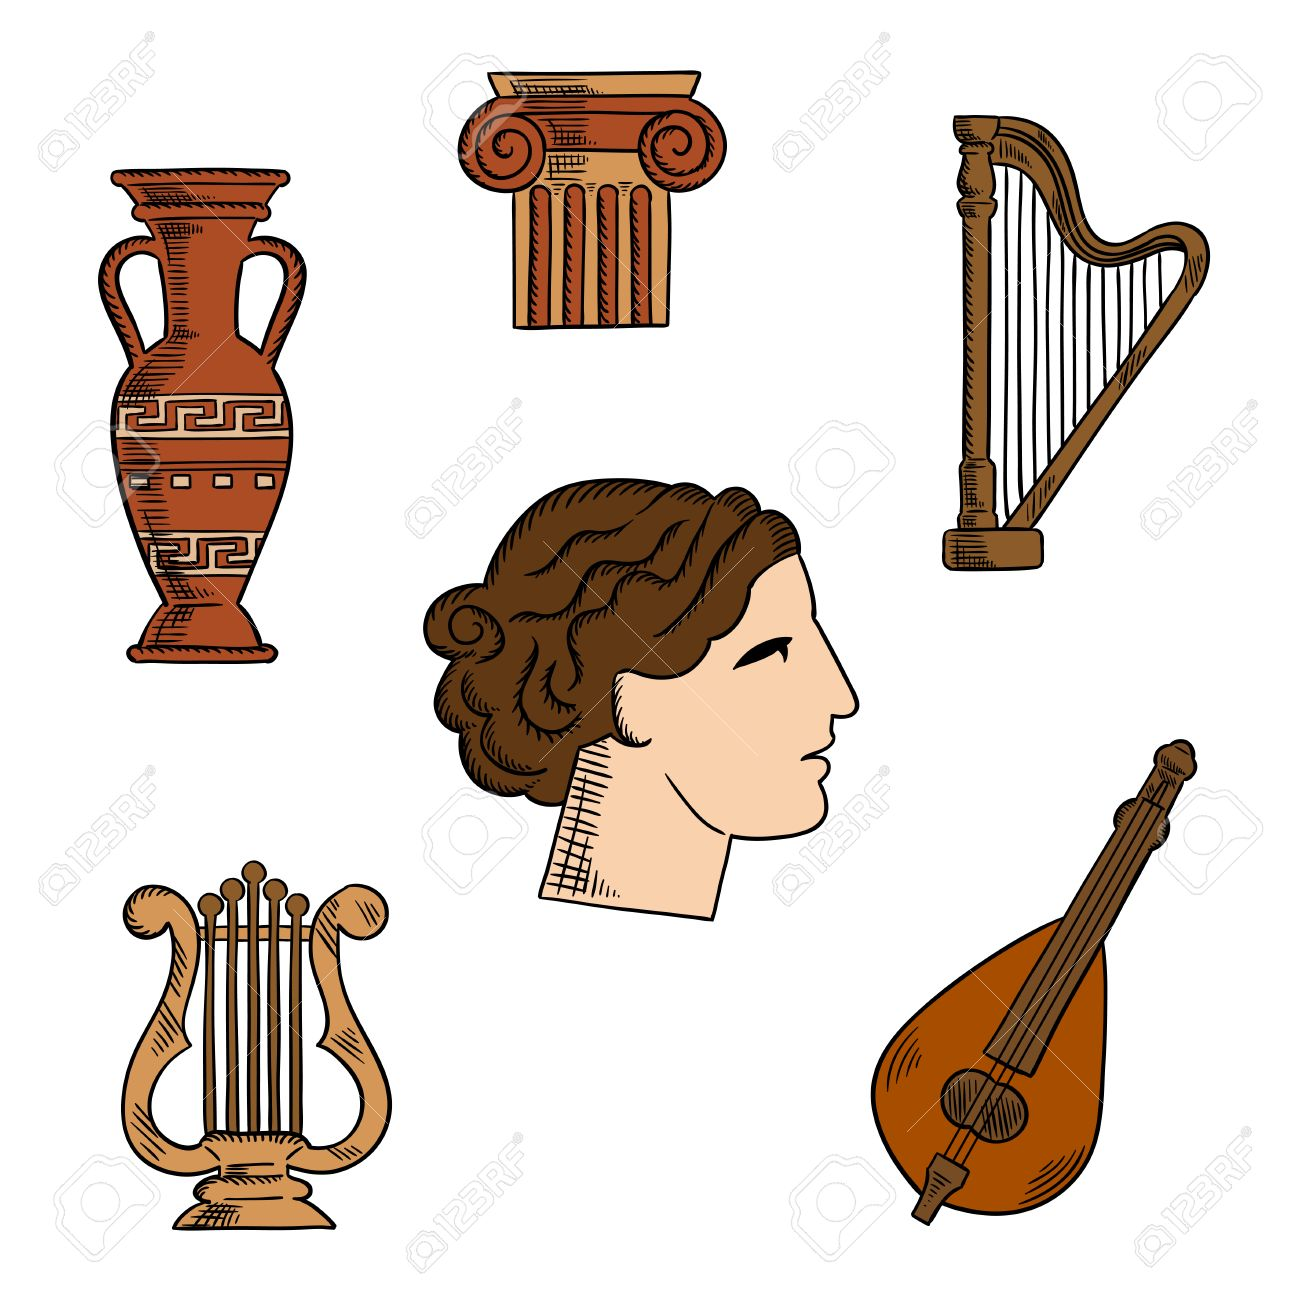 Architecture music and art symbols of ancient greece with profile architecture music and art symbols of ancient greece with profile of antique greek theater actress surrounded by ionic columns with ornamental scrolls biocorpaavc Image collections